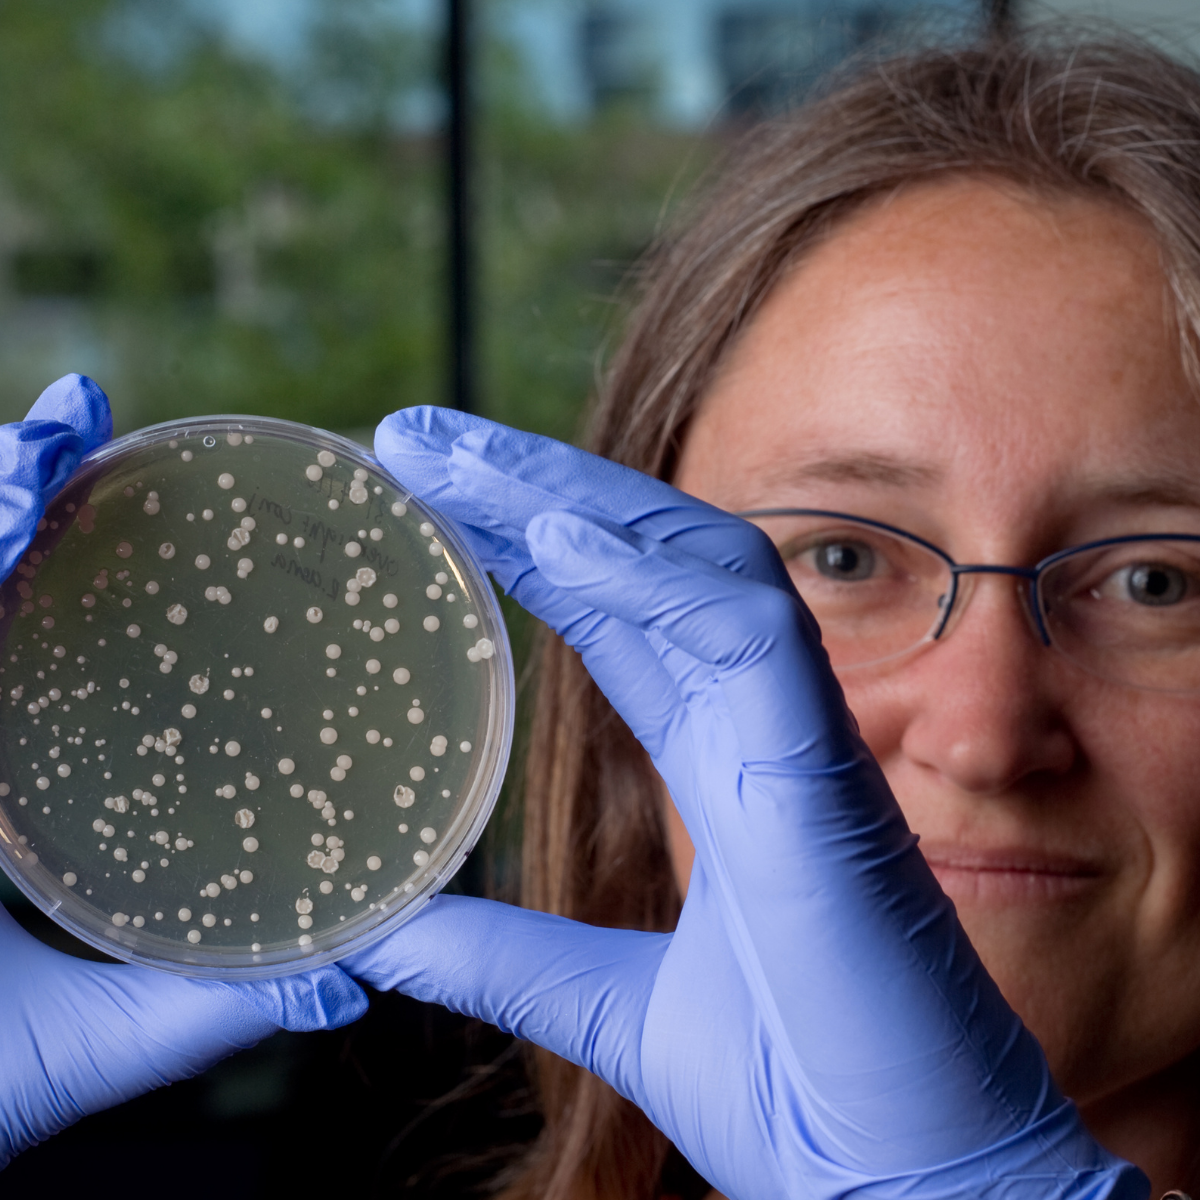 Katrina Whiteson, PhD. holding up a petri dish